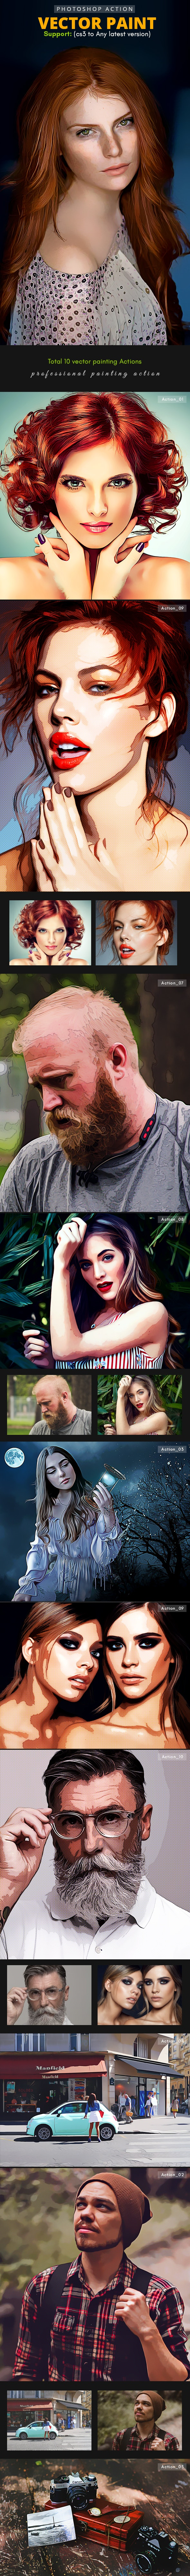 Vector Painting Actions - Photo Effects Actions